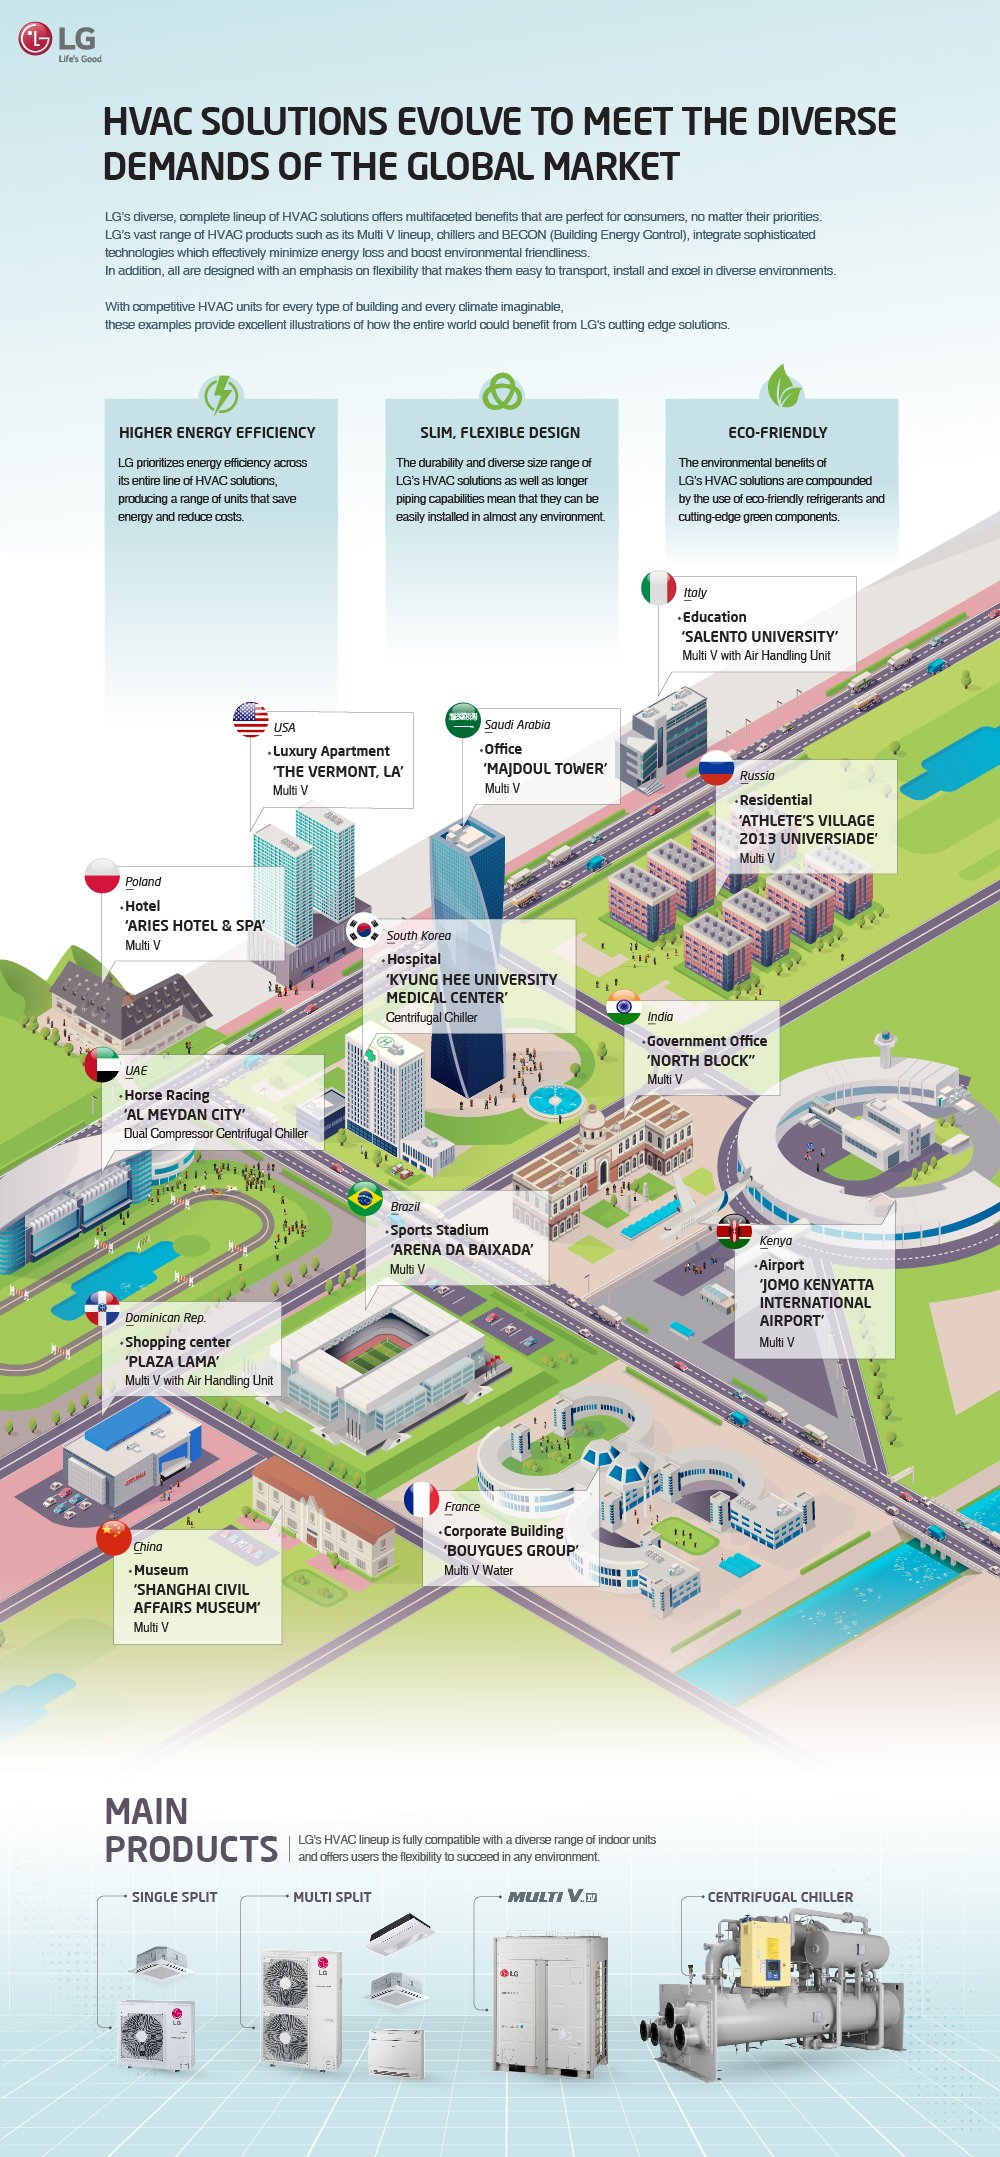 HVAC SOLUTIONS EVOLVE TO MEET THE DIVERSE DEMANDS OF THE GLOBAL MARKET